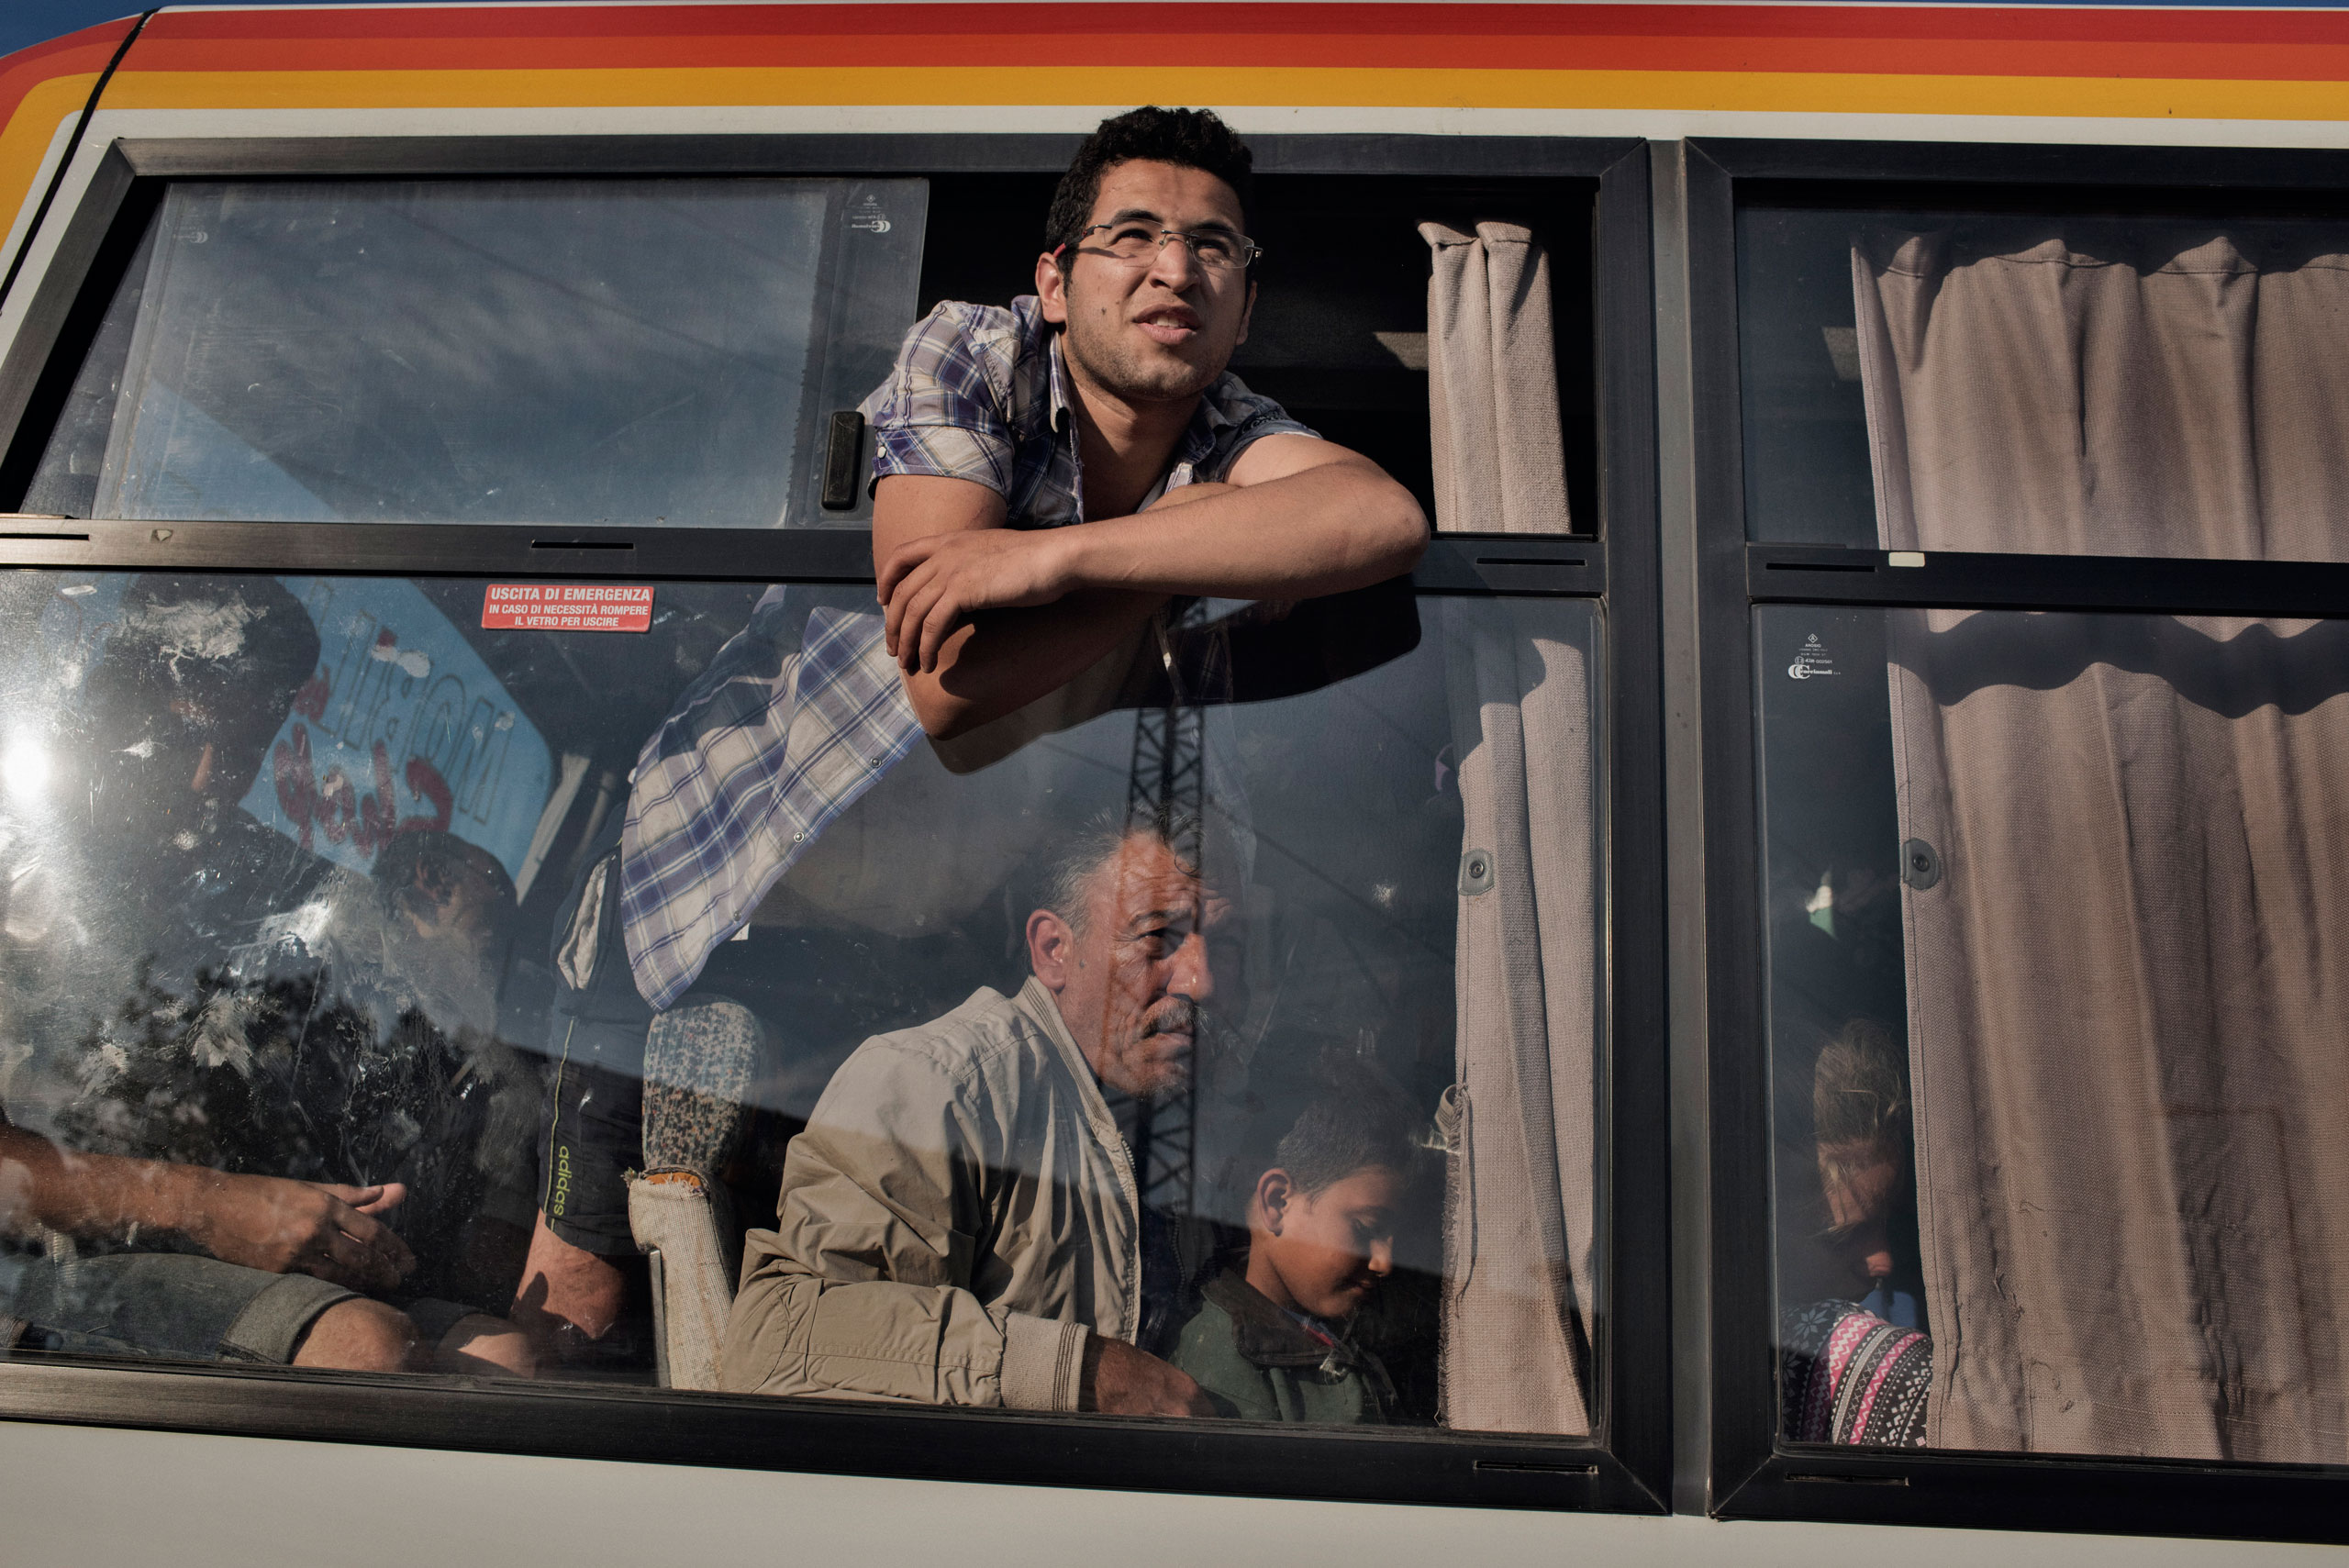 Ghafek Aiad Alsaho, a Syrian migrant, looks through the window of a police bus after border guards caught him crossing illegally from Serbia into Hungary on his way into the European Union in Roszke, Hungary, on Aug. 29, 2015.